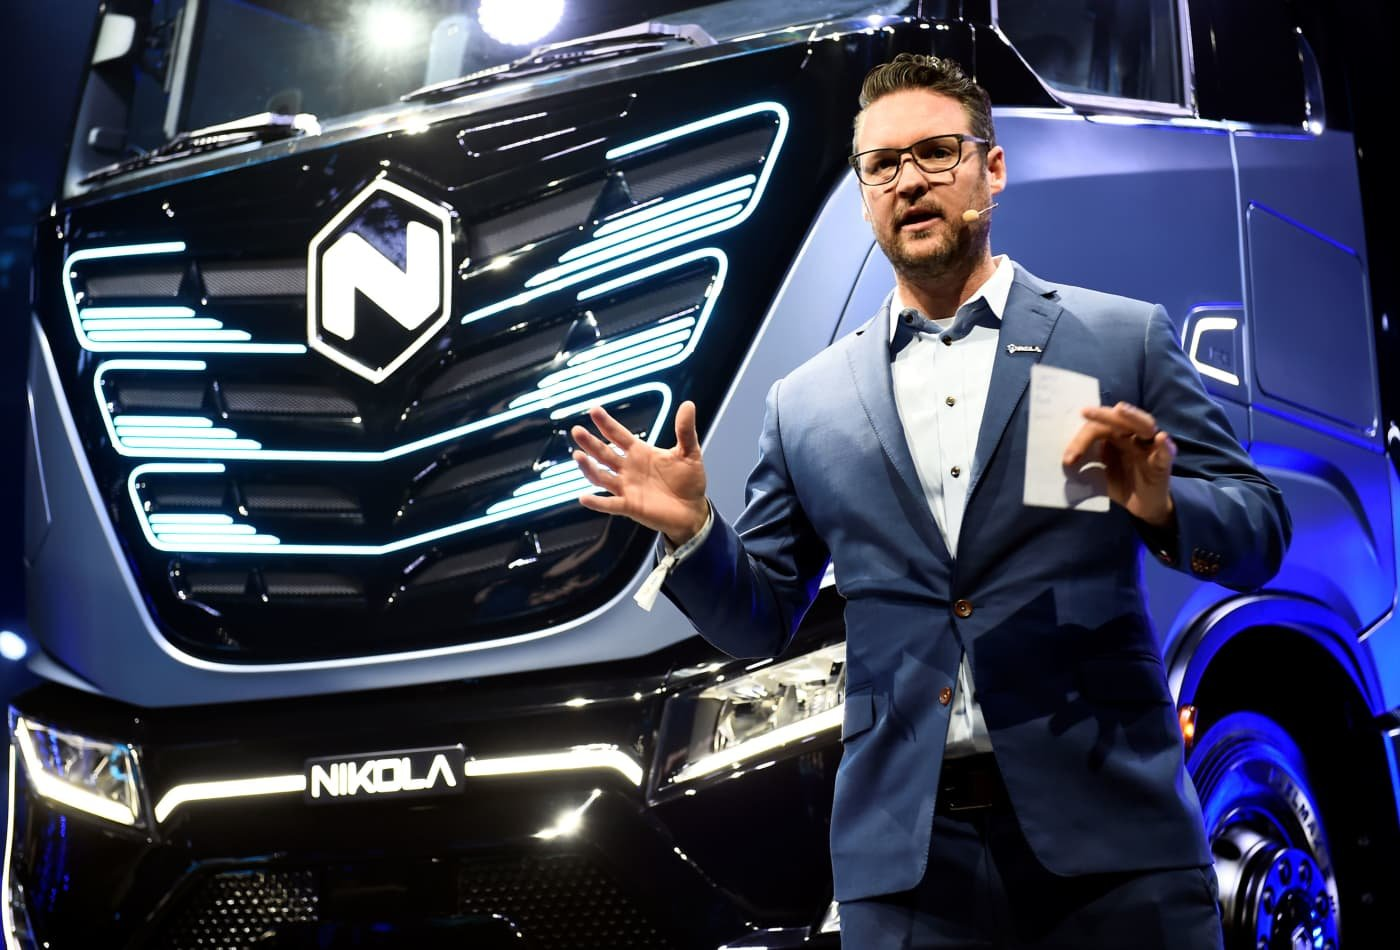 Nikola admits ousted chairman misled investors as legal costs mount